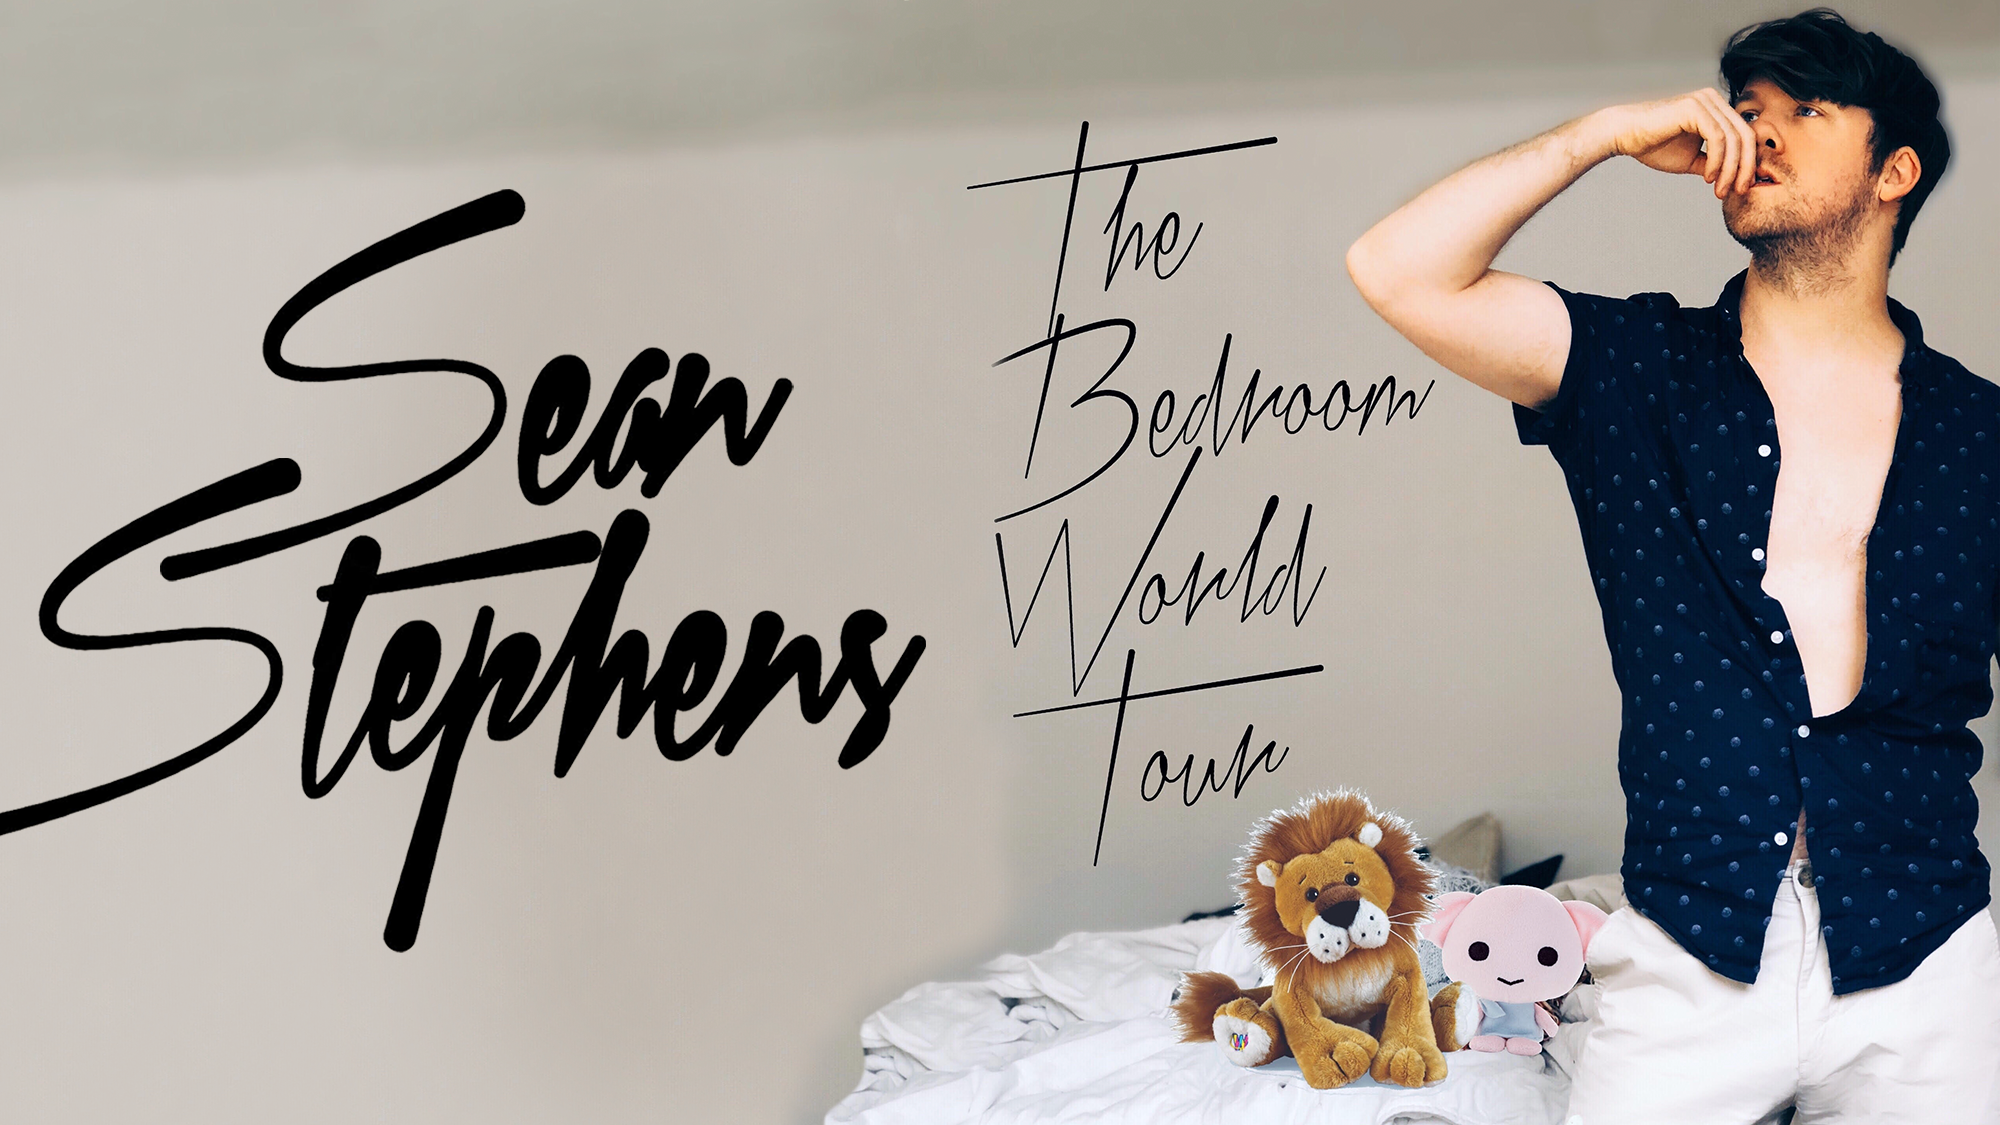 Sean Stephens: The Bedroom World Tour